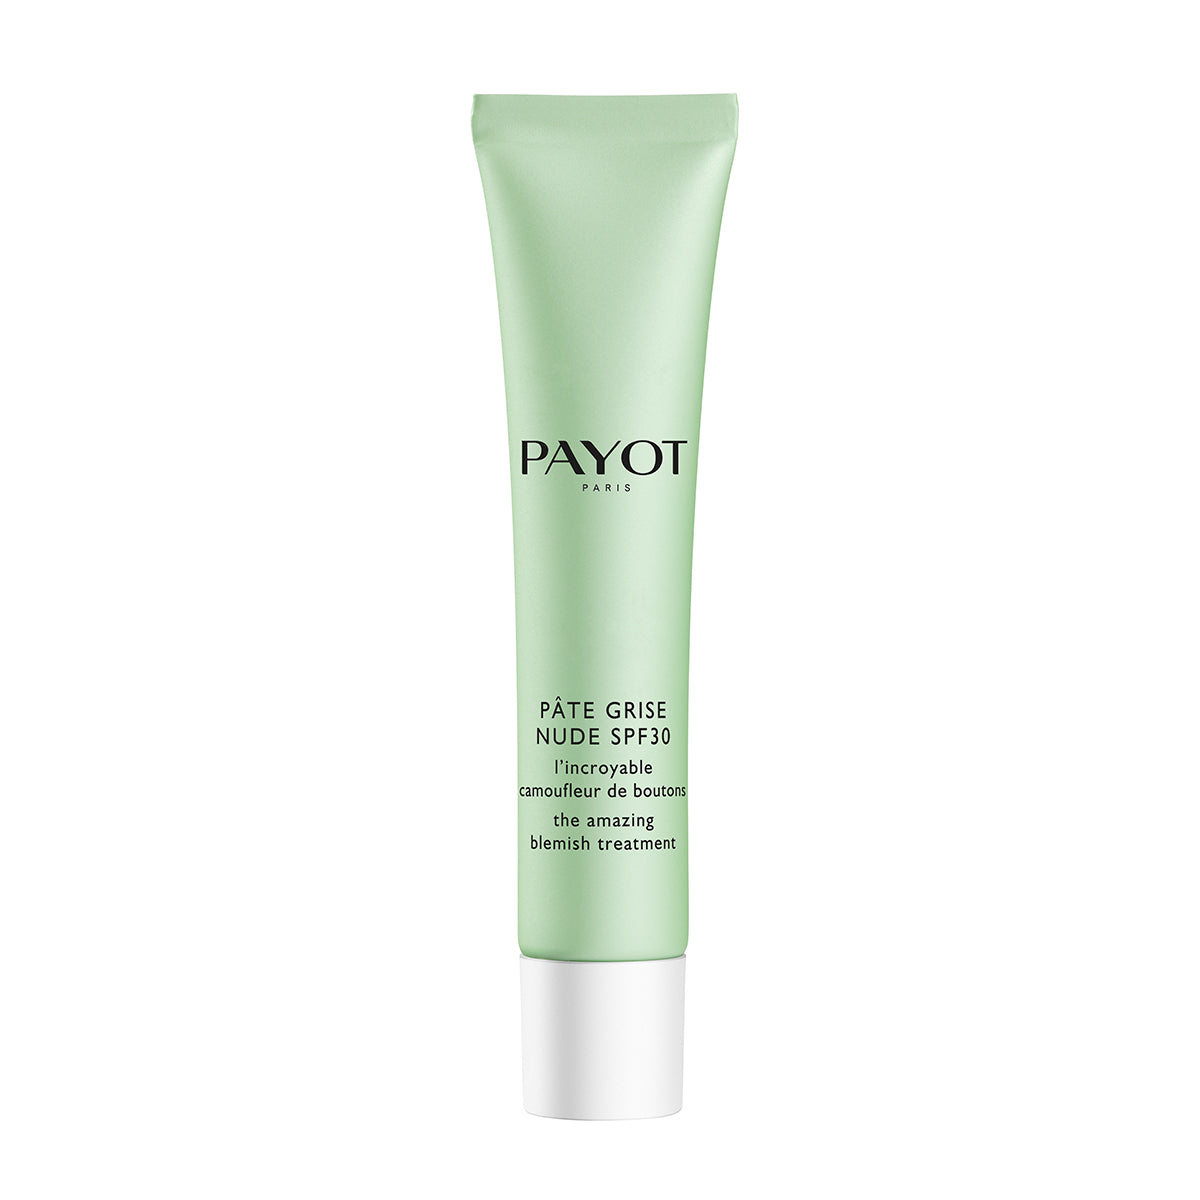 Payot Pate Grise The Amazing Blemish Treatment SPF 30